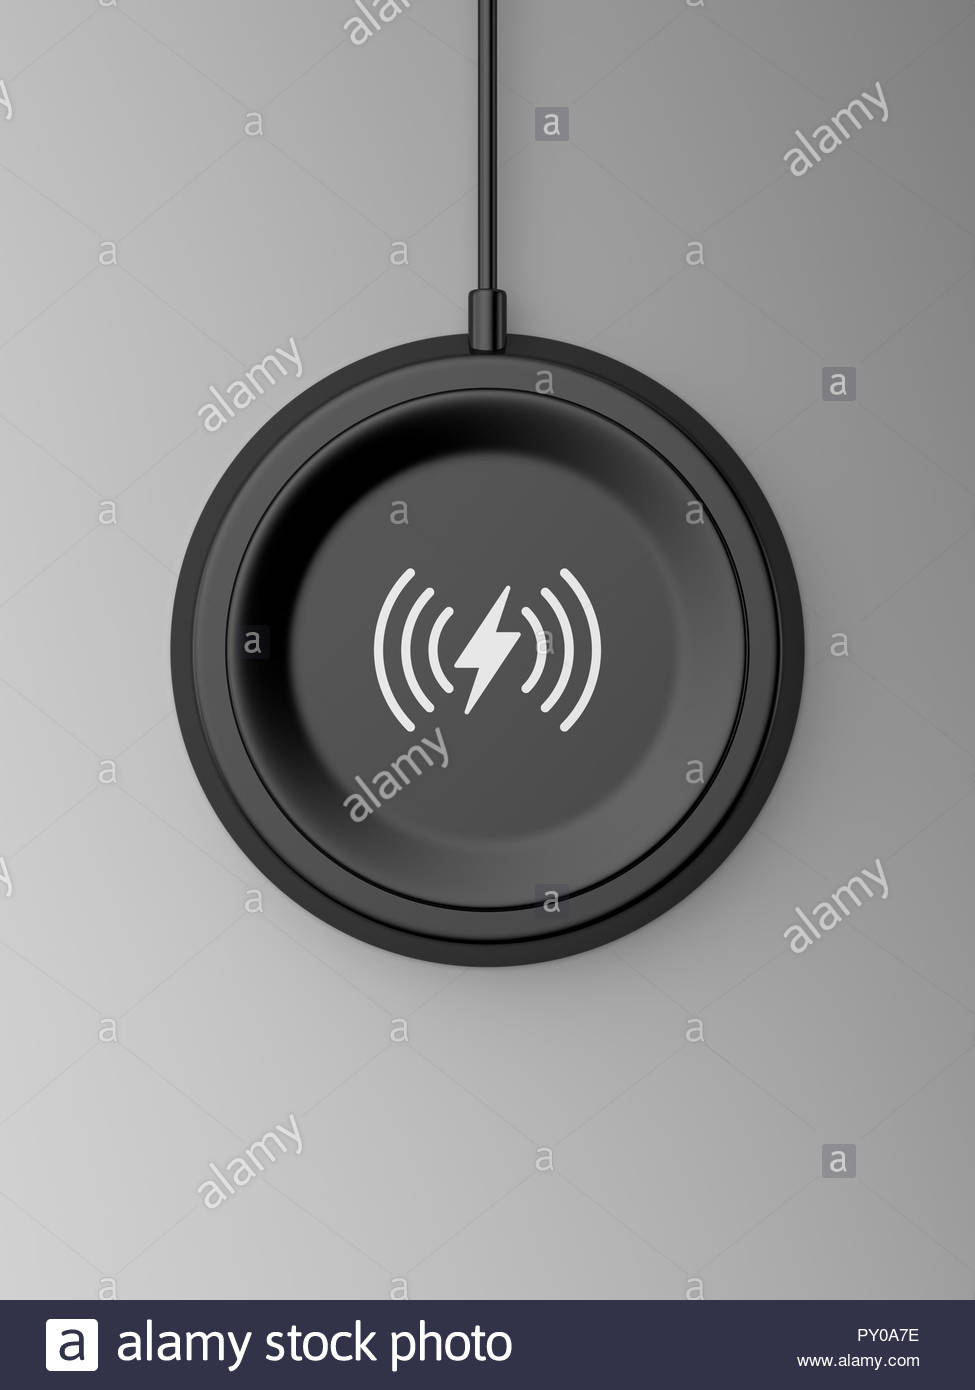 3d rendered top view of a black wireless charger with a bevelled edge and recessed base on a grey background. - Stock Image